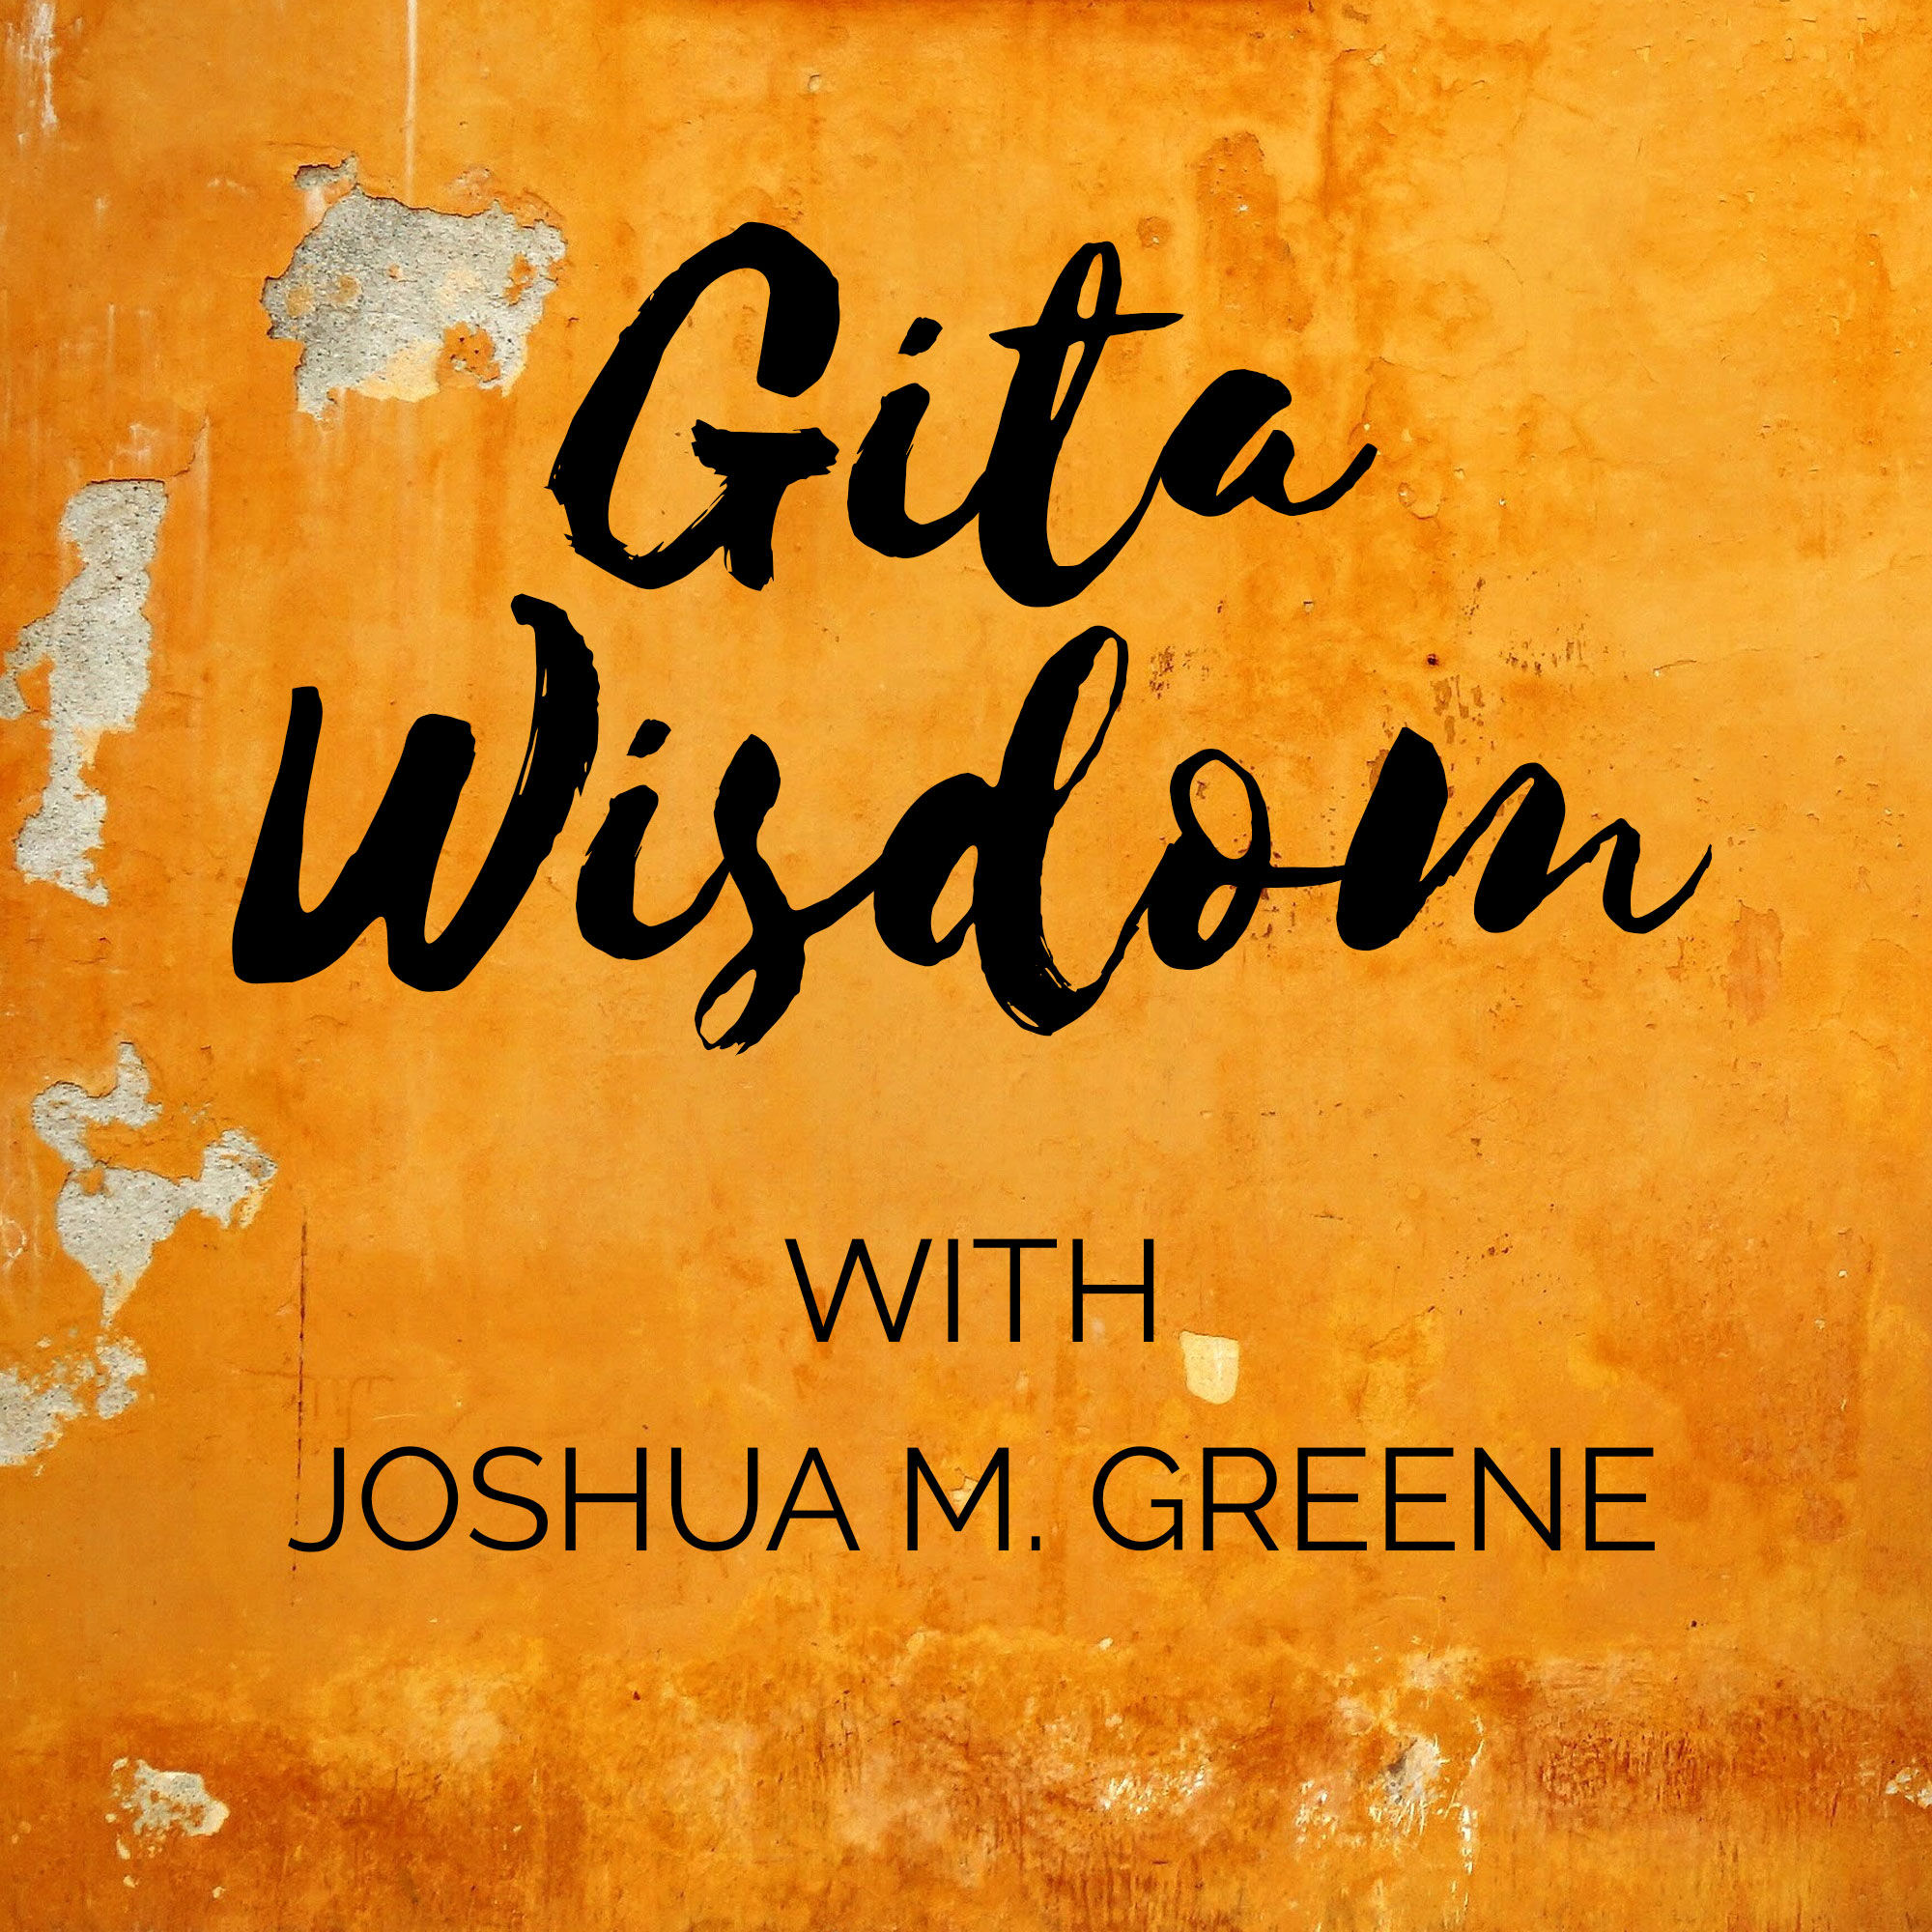 Gita Wisdom Teachings by Joshua M. Greene (Yogesvara)